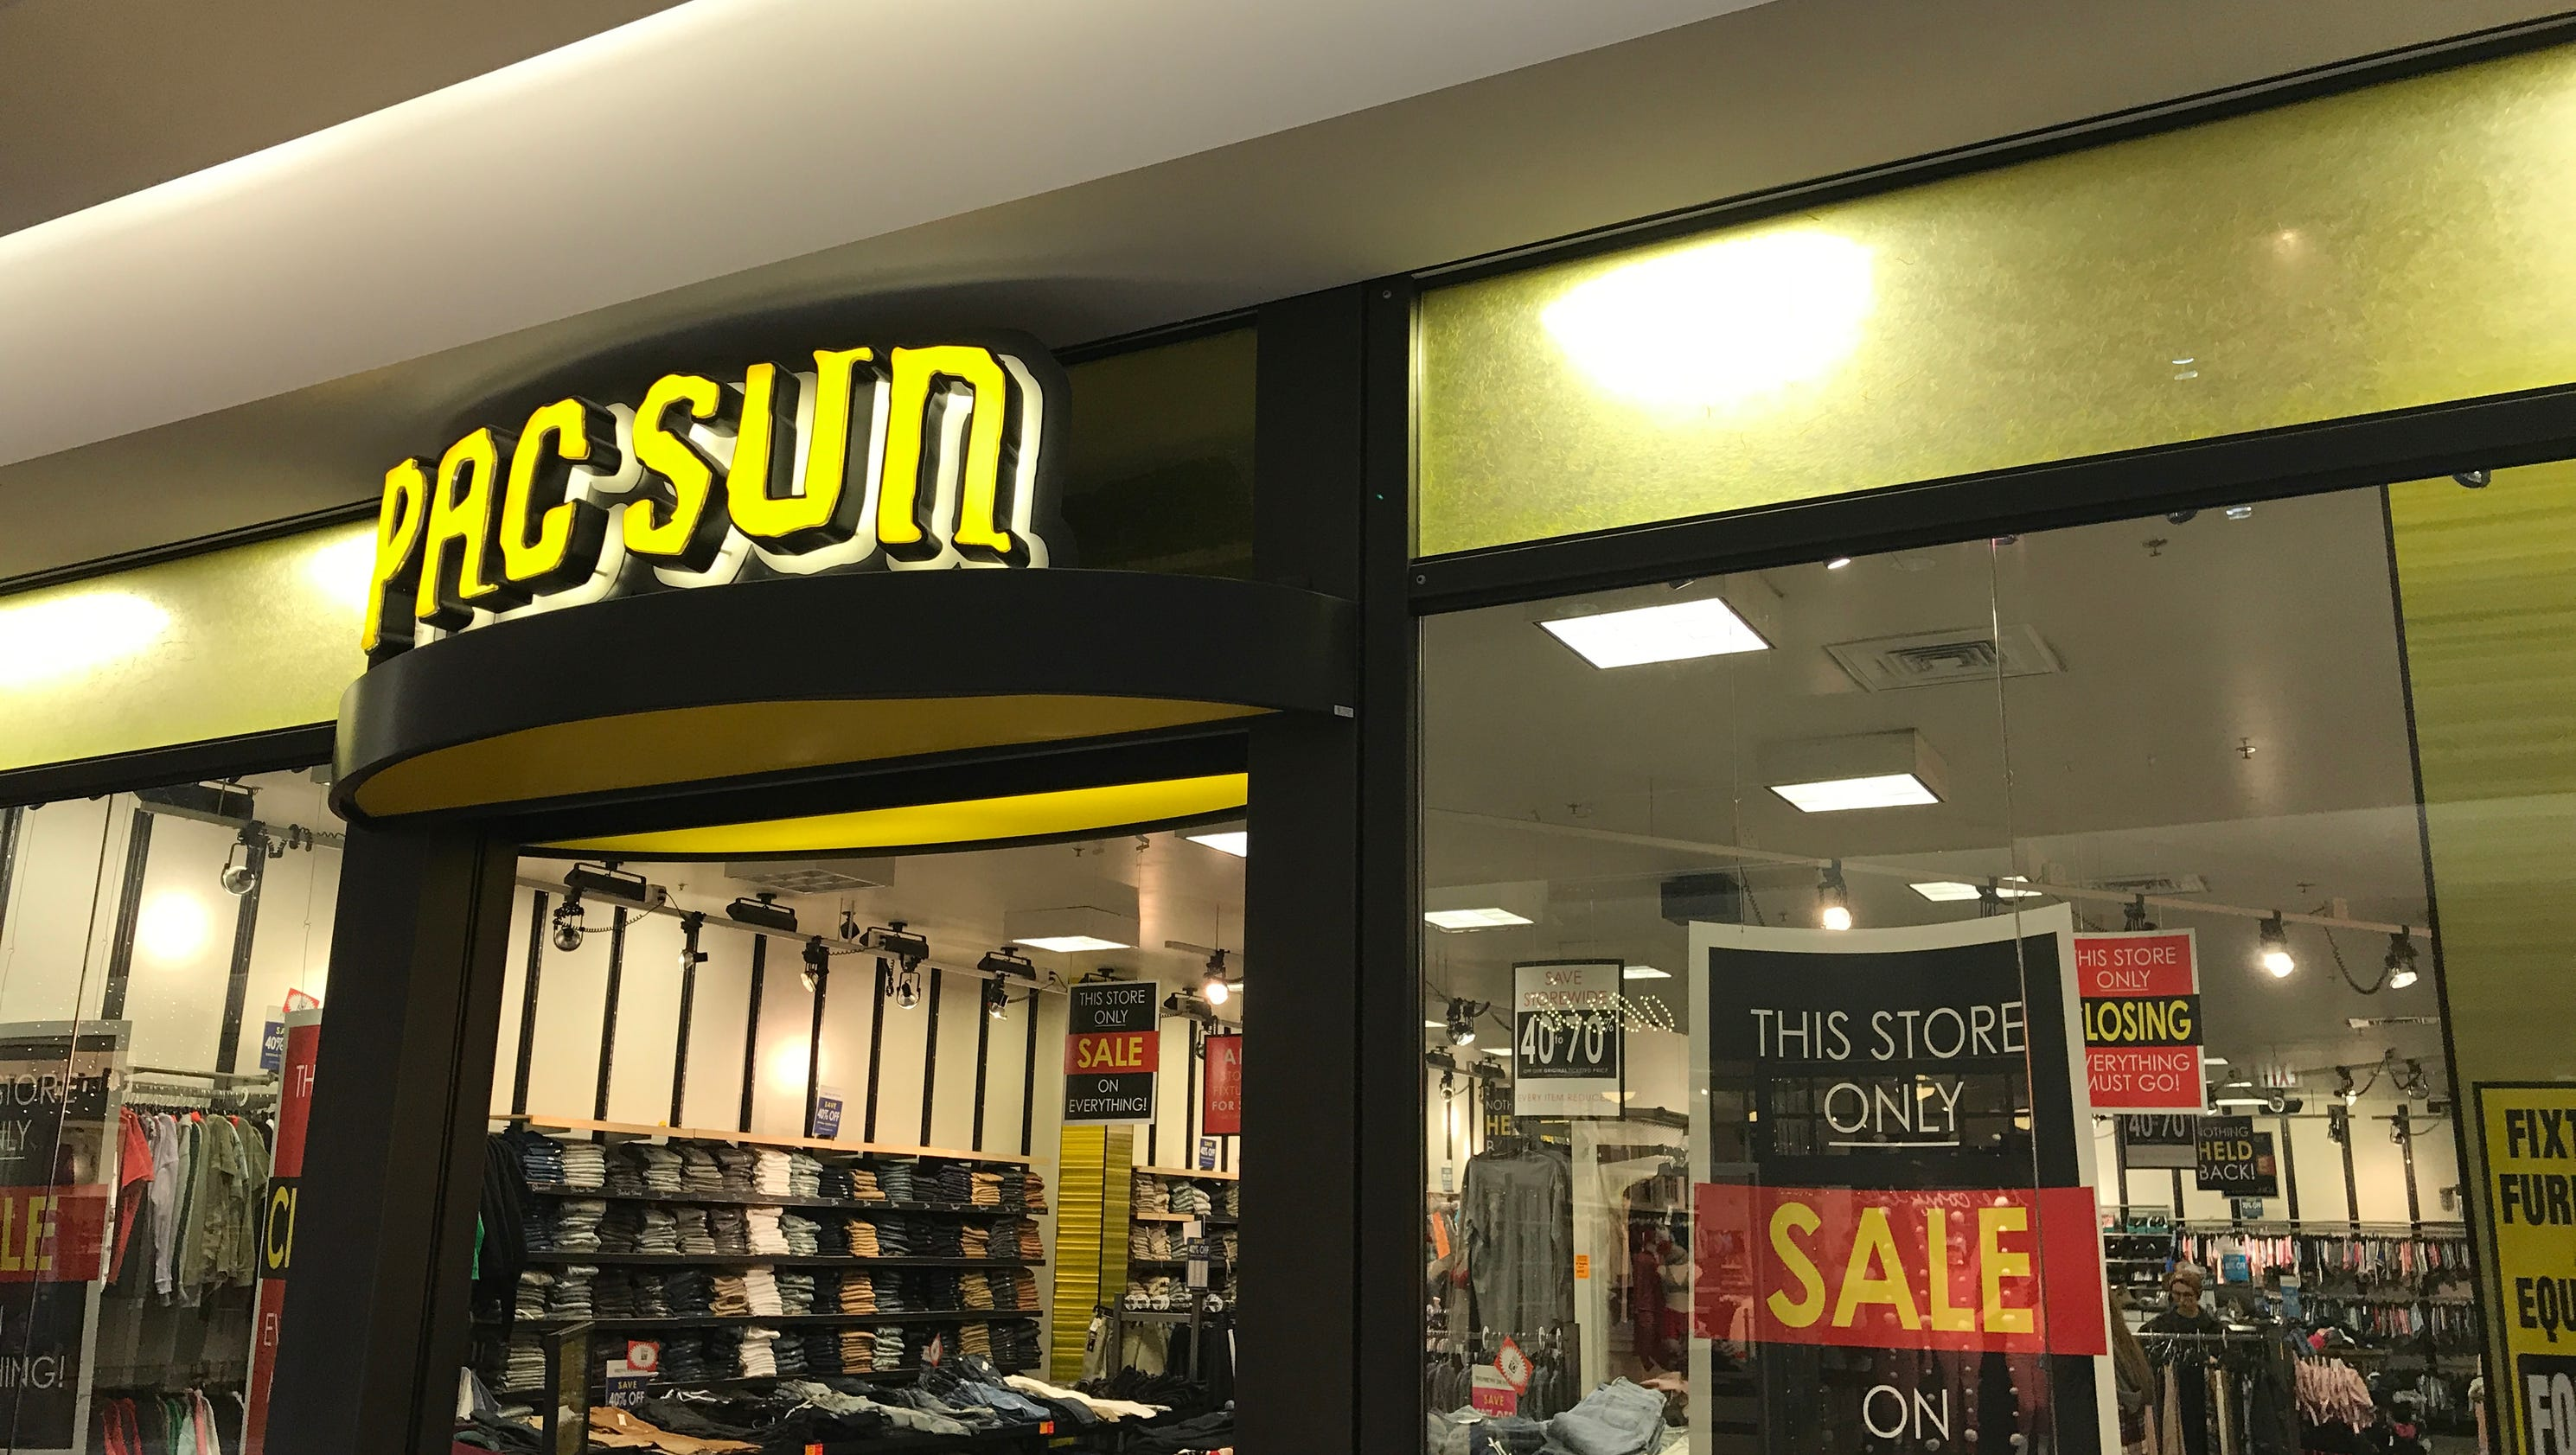 Shop VANS at PacSun and get this great deal: 30% and 50% off many items, including shoes, flannels, hats, and more. No PacSun coupon code needed.5/5(8).